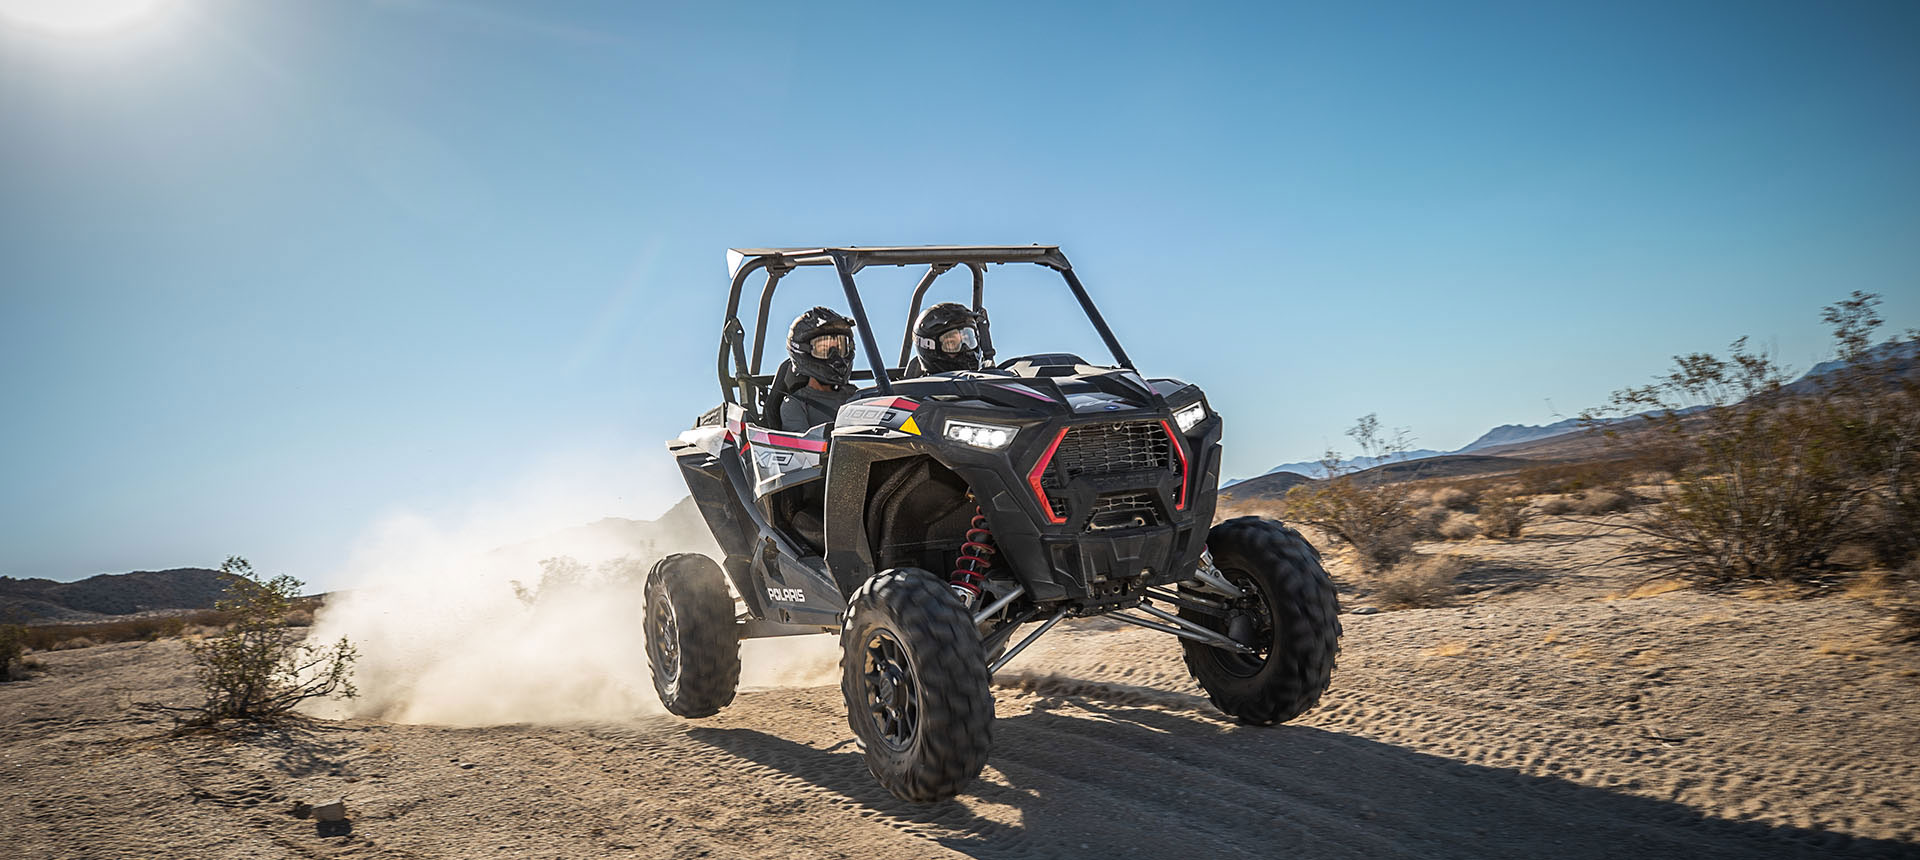 2019 Polaris RZR XP 1000 in Marietta, Ohio - Photo 8